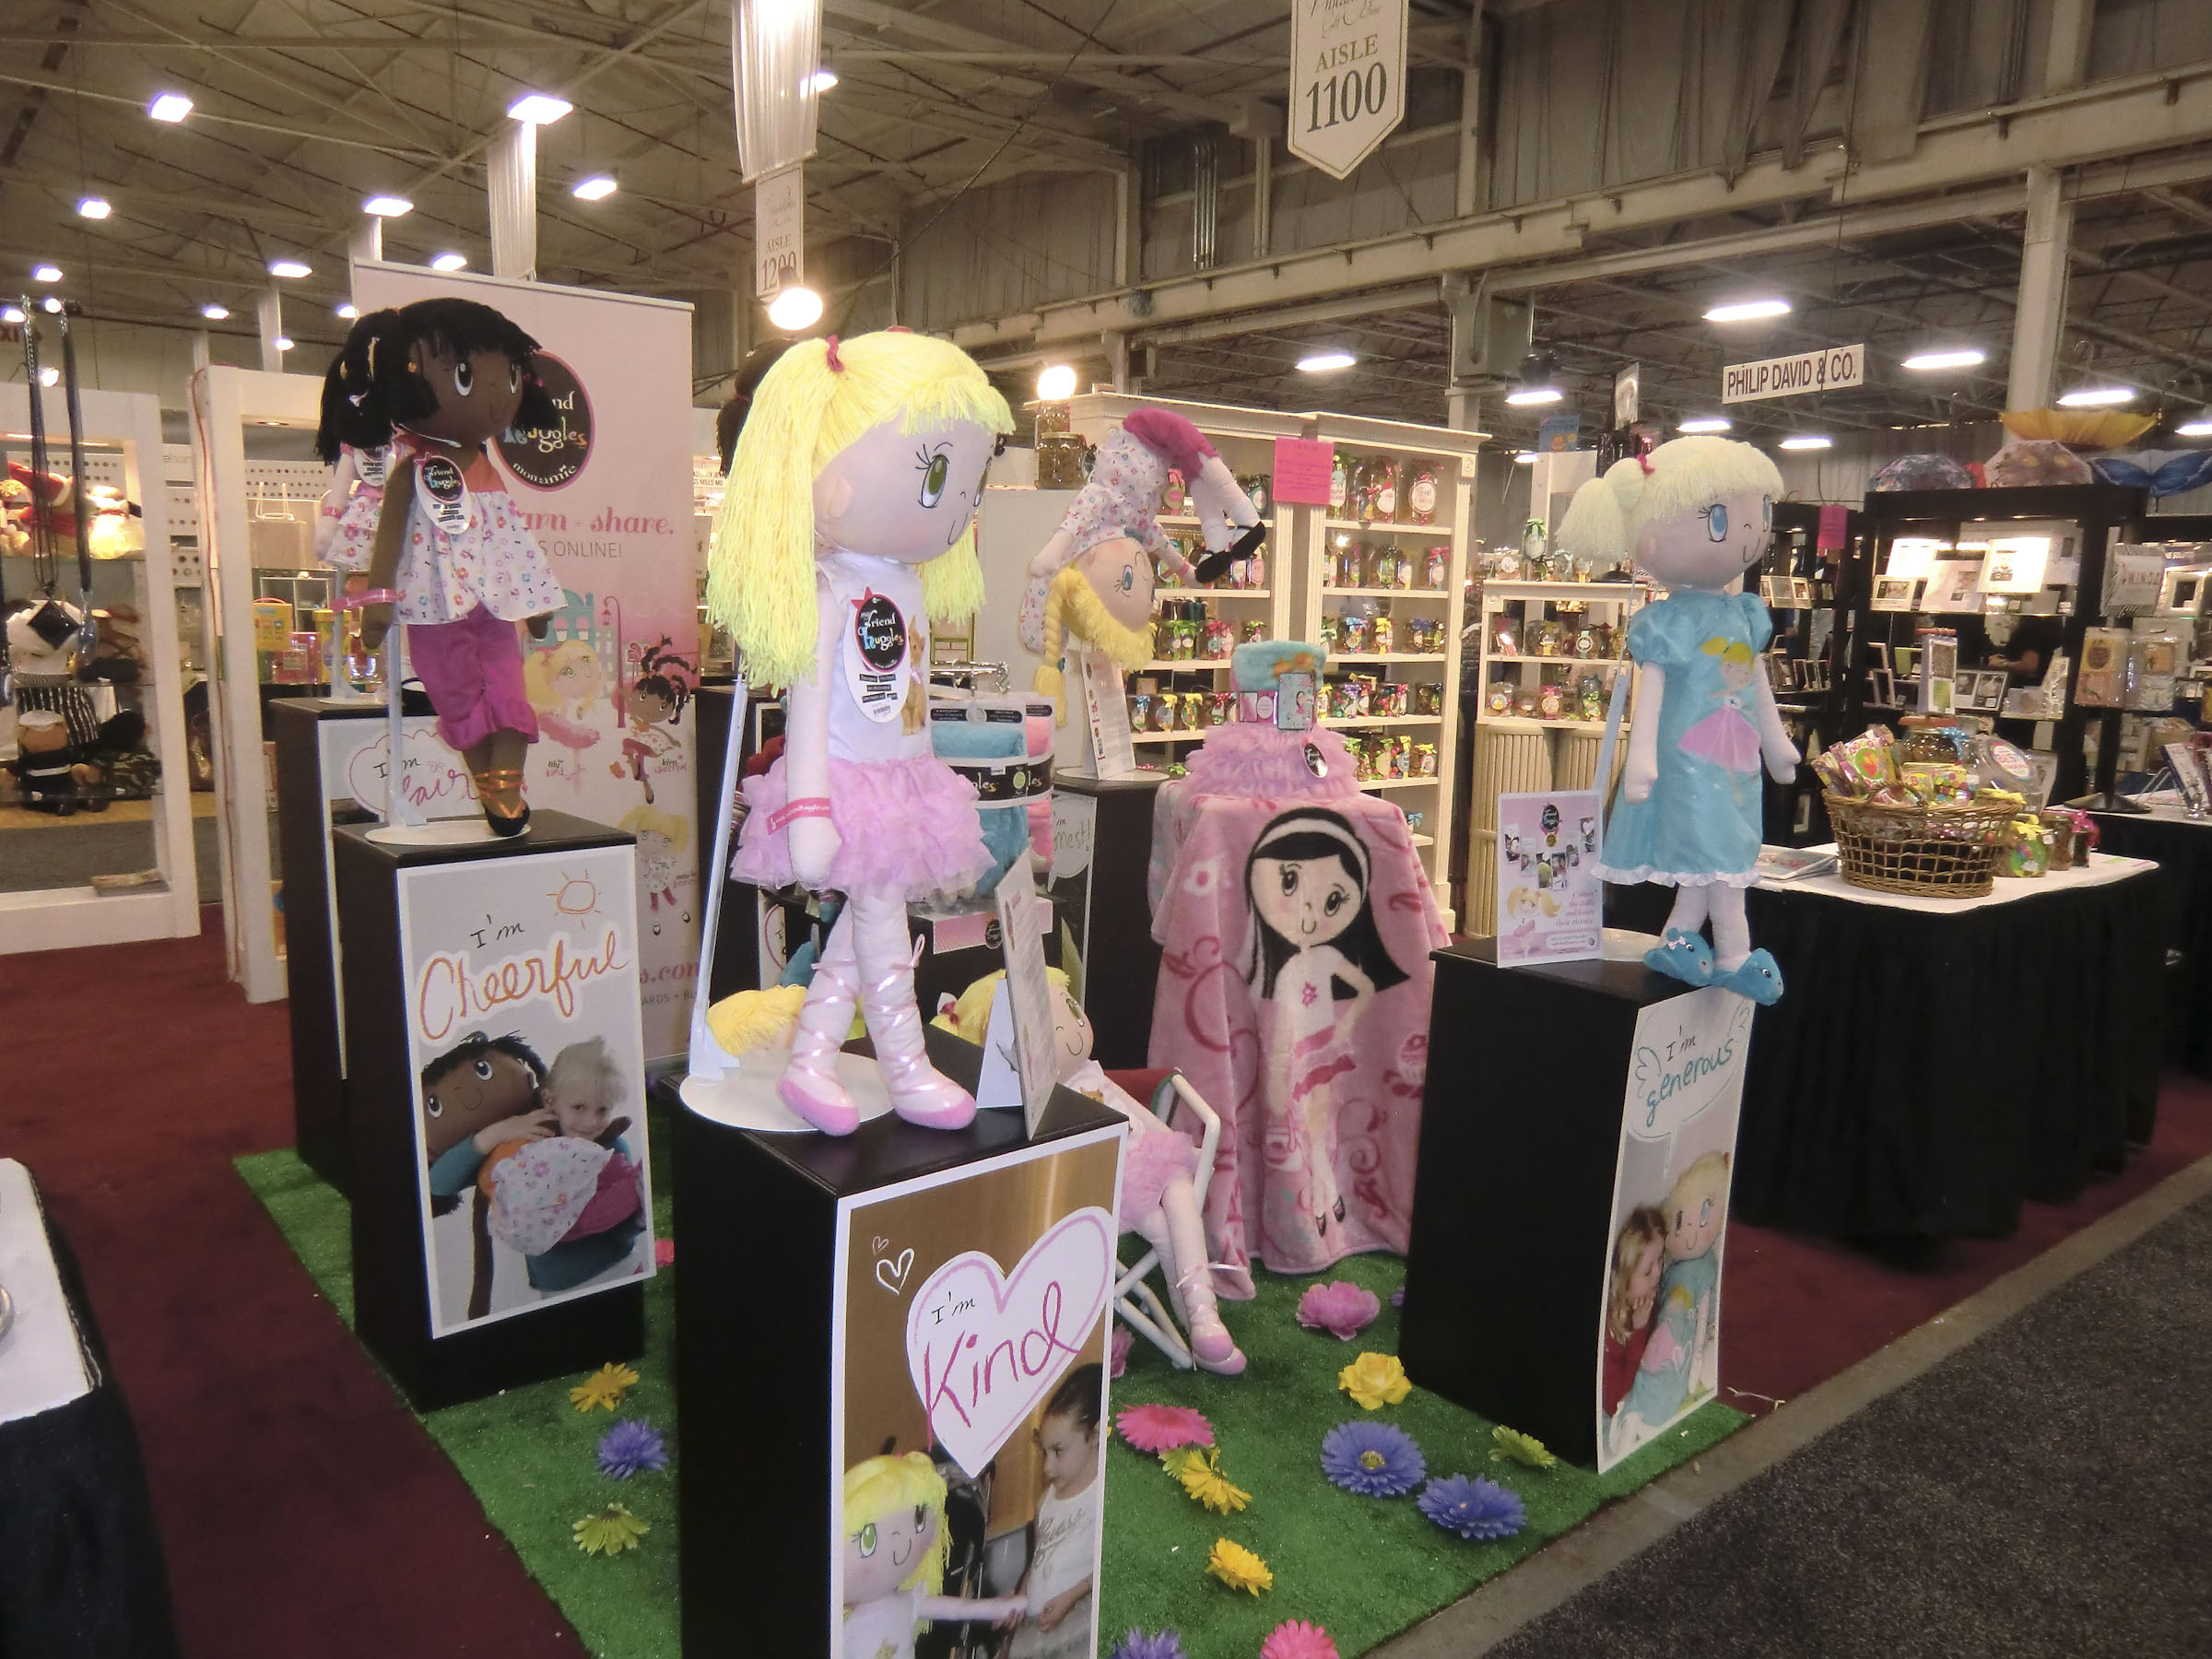 My-Friend-Huggles-2012-Philadelphia-Gift-Show-4-8 | My Friend Huggles